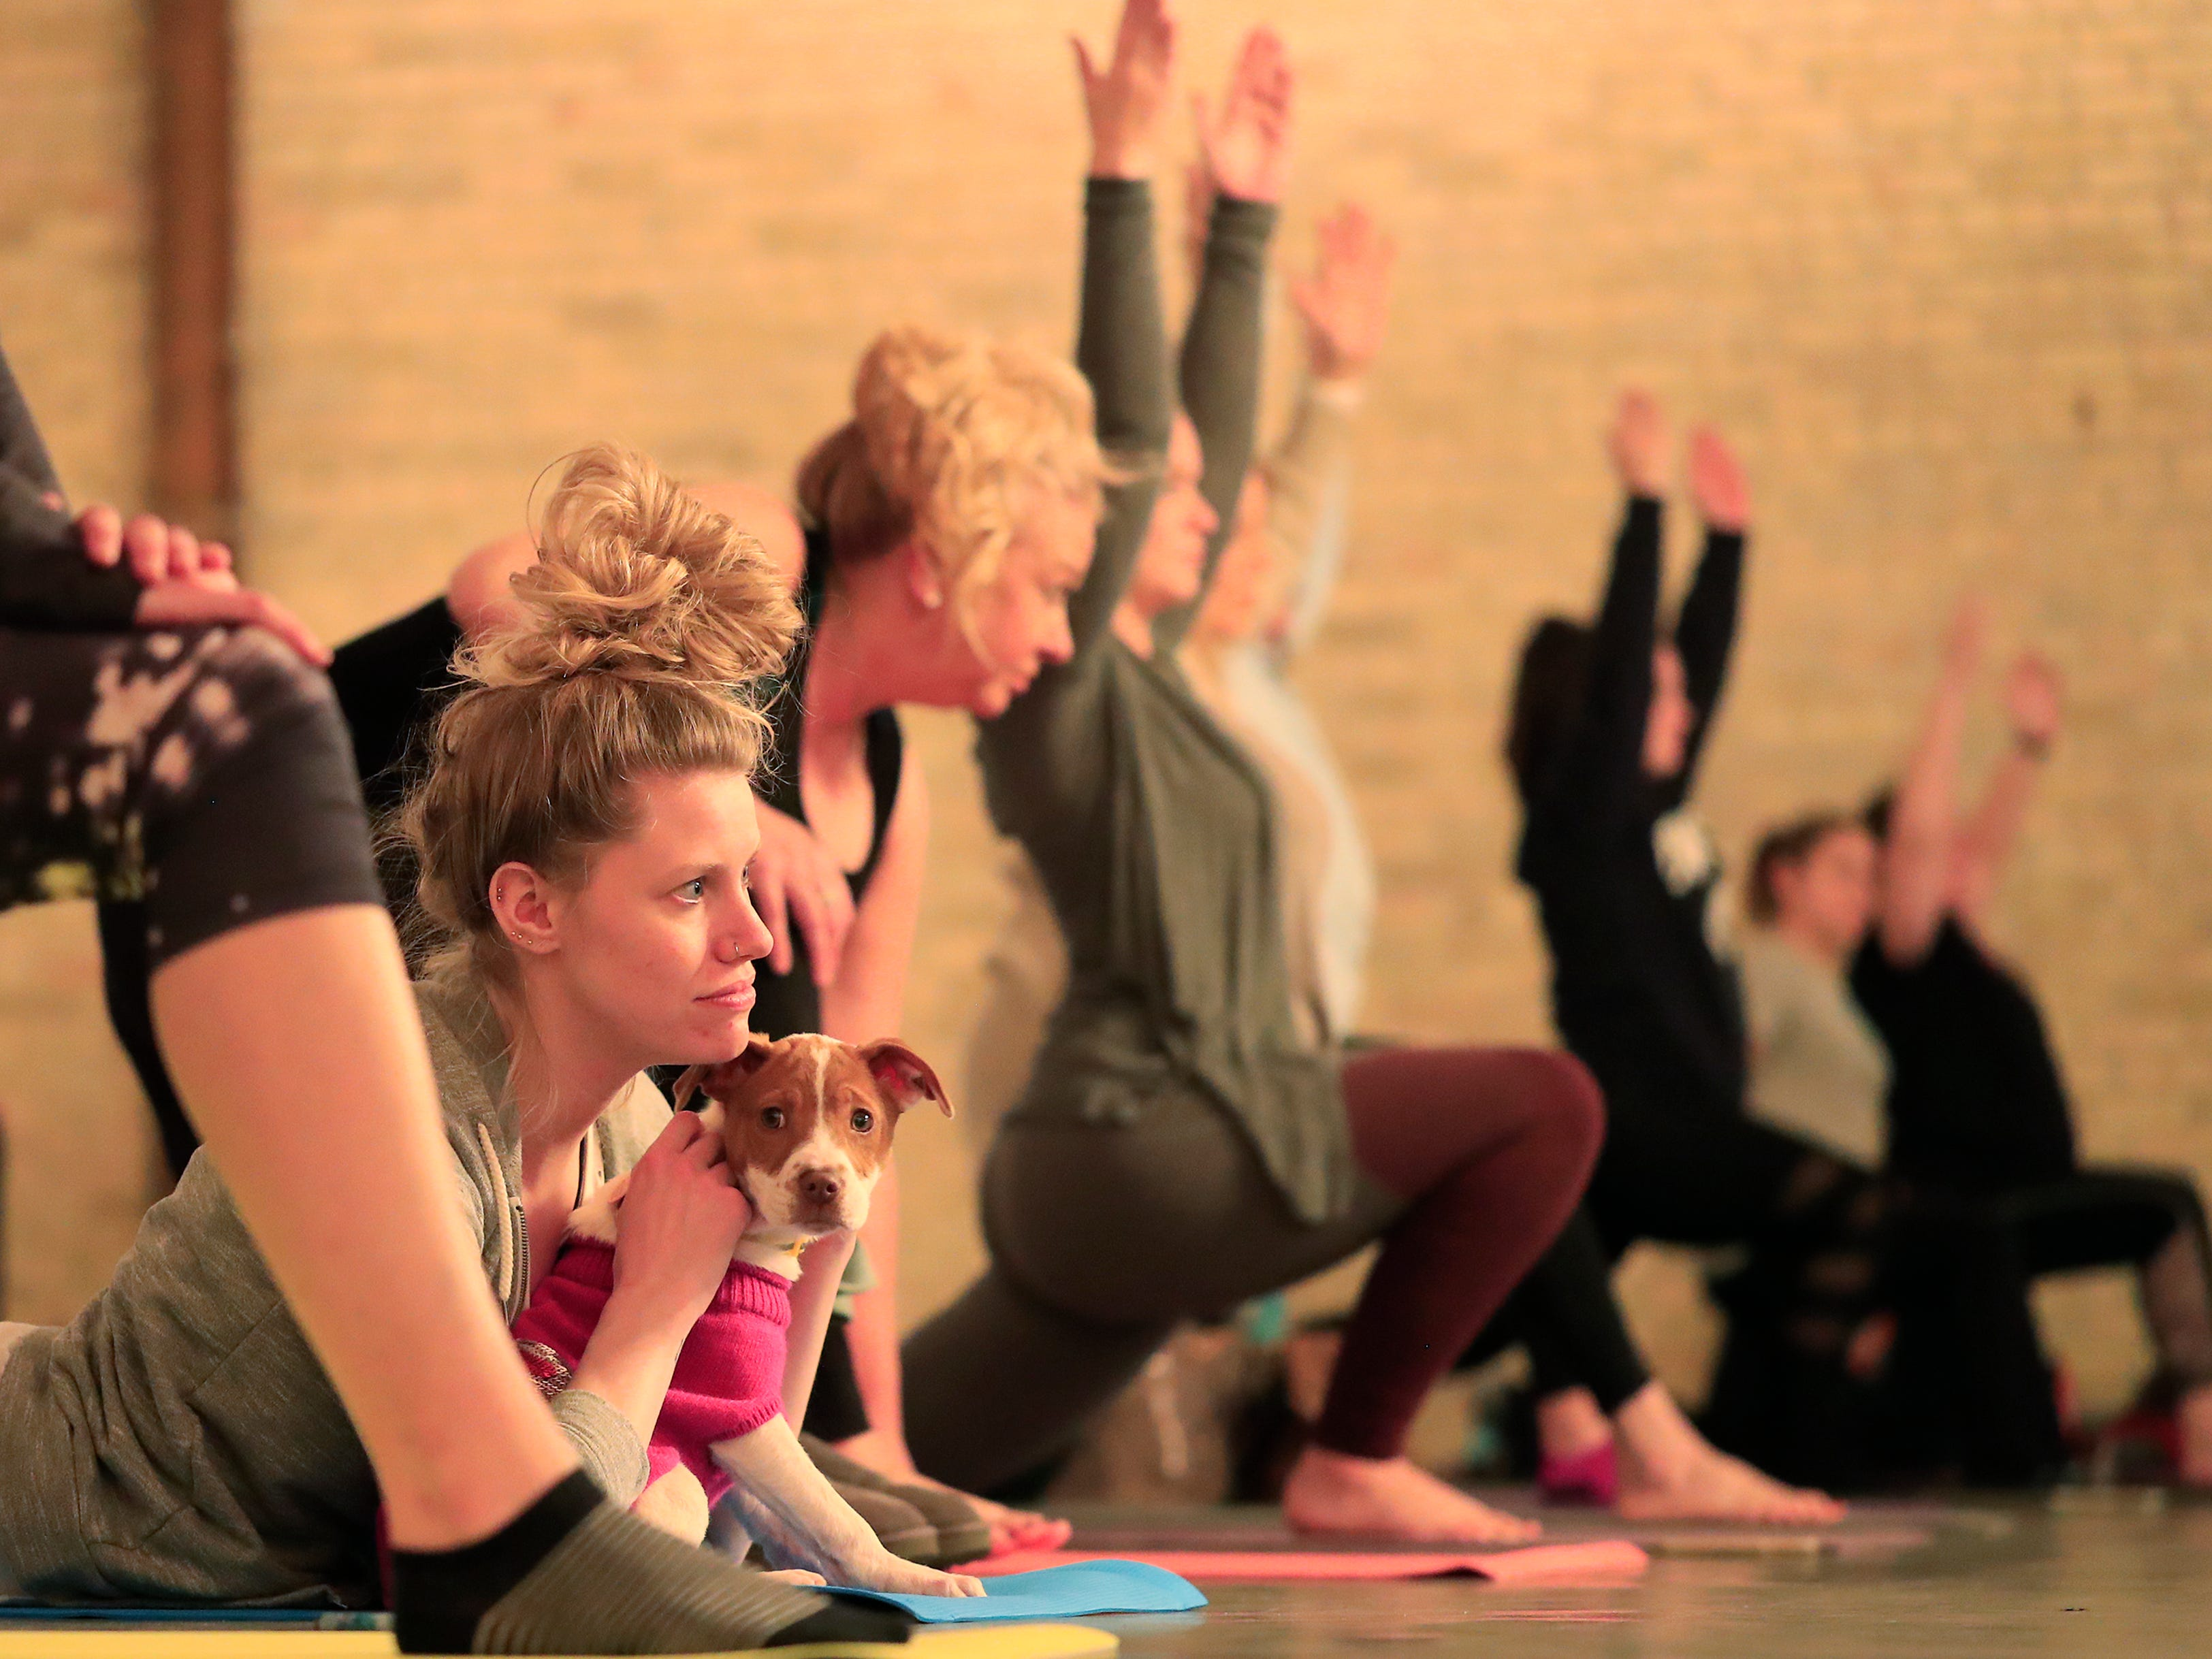 Kaitlin Lotto of Greenville participates in a Yoga With Puppies class at Gather on Broadway on Wednesday, January 9, 2019 in Green Bay, Wis.